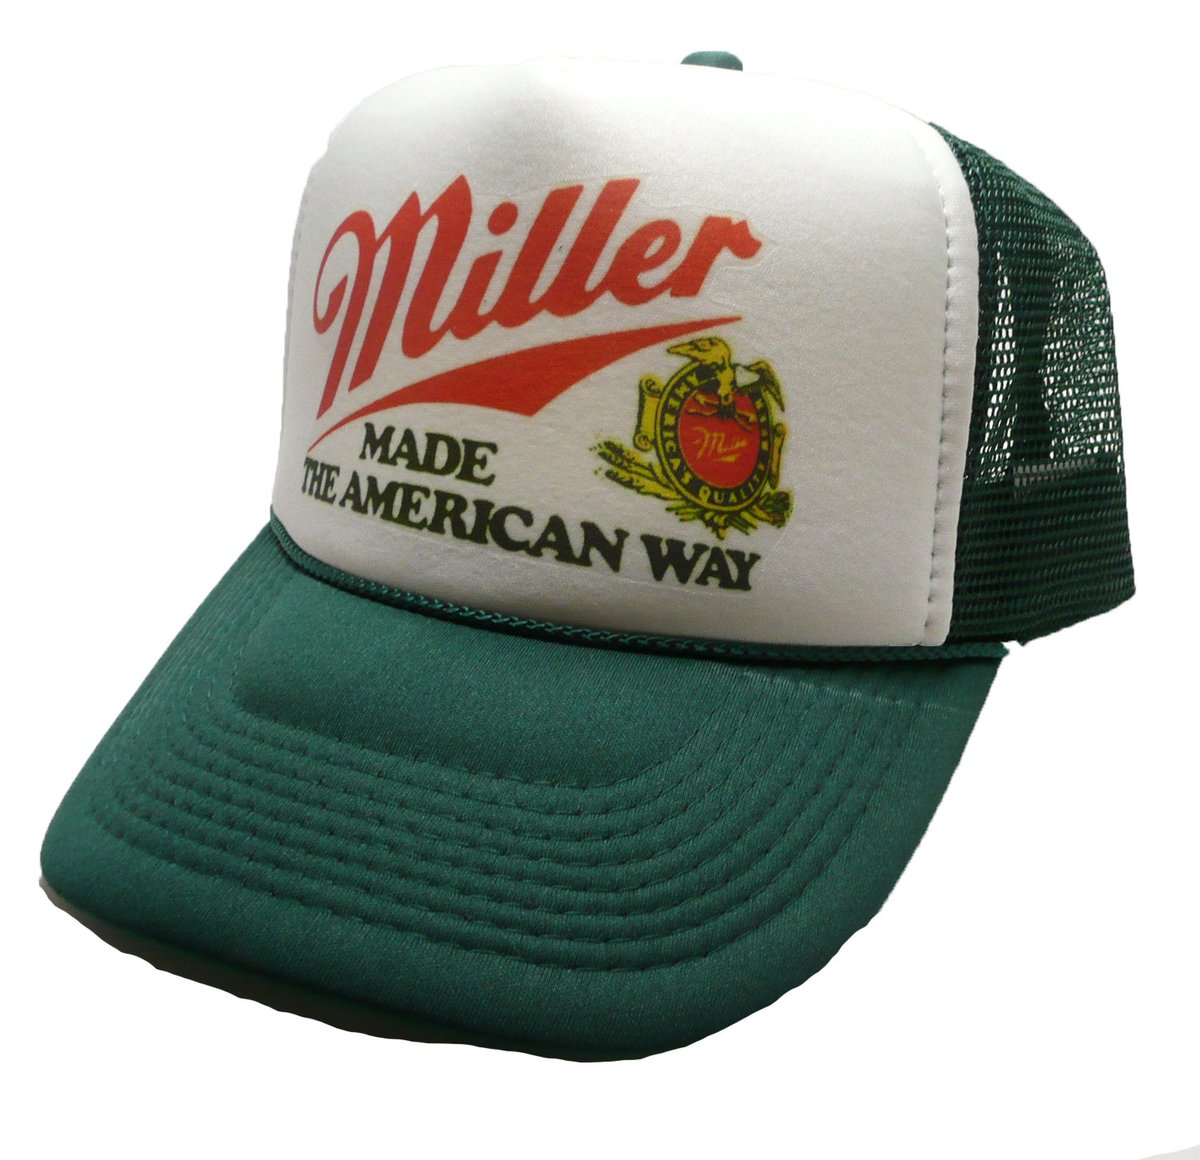 "Thanks for the kind words! ★★★★★ ""Item was great in quality also came fast"" Kevin  #etsy #green #white #bachelorparty #christmas #rocker #millerbeerhat #millerbeer #beerhat #partyhat"